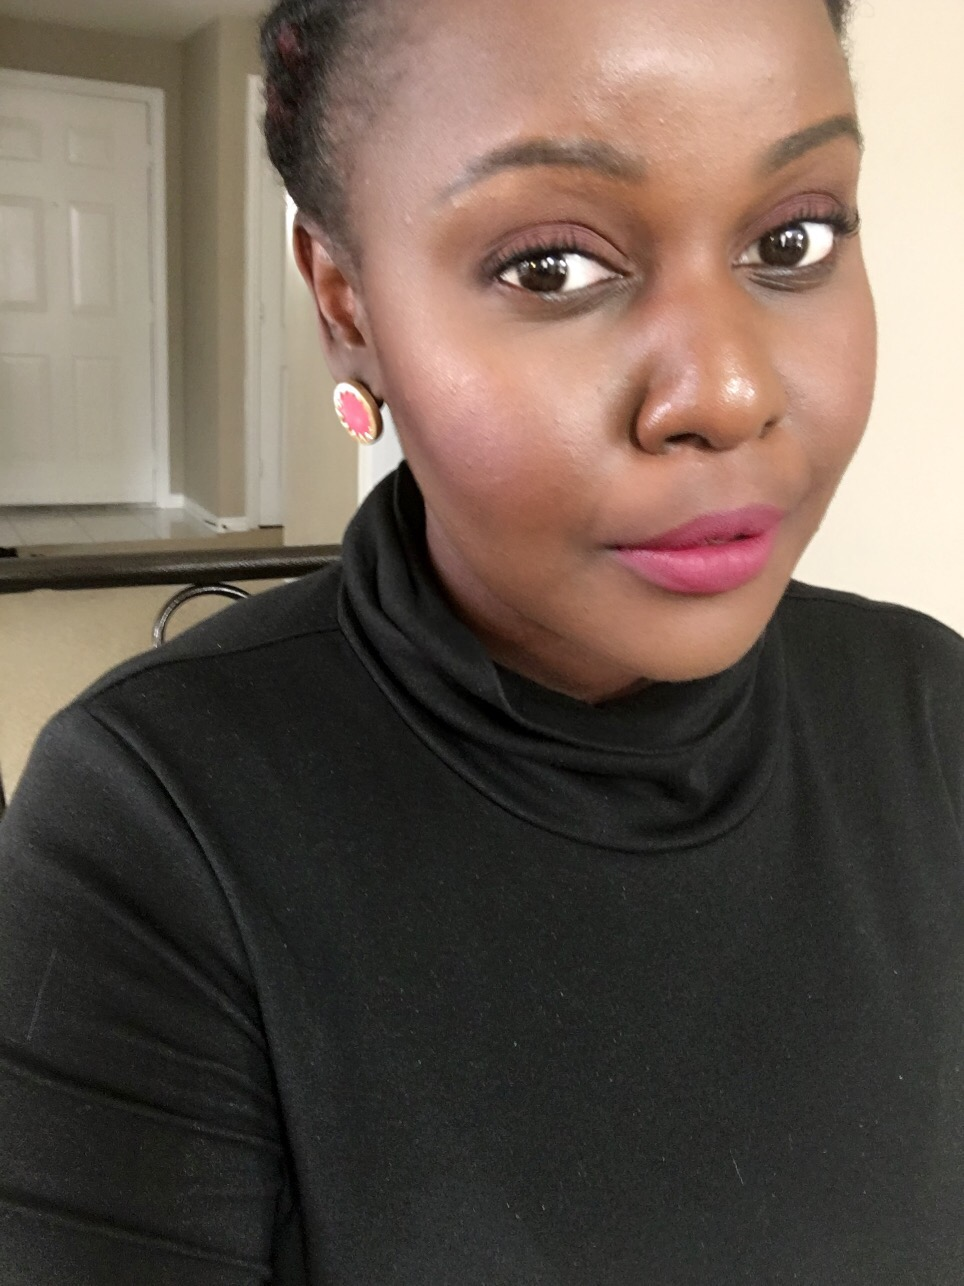 pink matte lipstick for black women sephora collection cream lipstain color 14 black berry sorbet Kat Von D Everlasting Liquid Lipsticks Review on Dark Skin Black Women of color